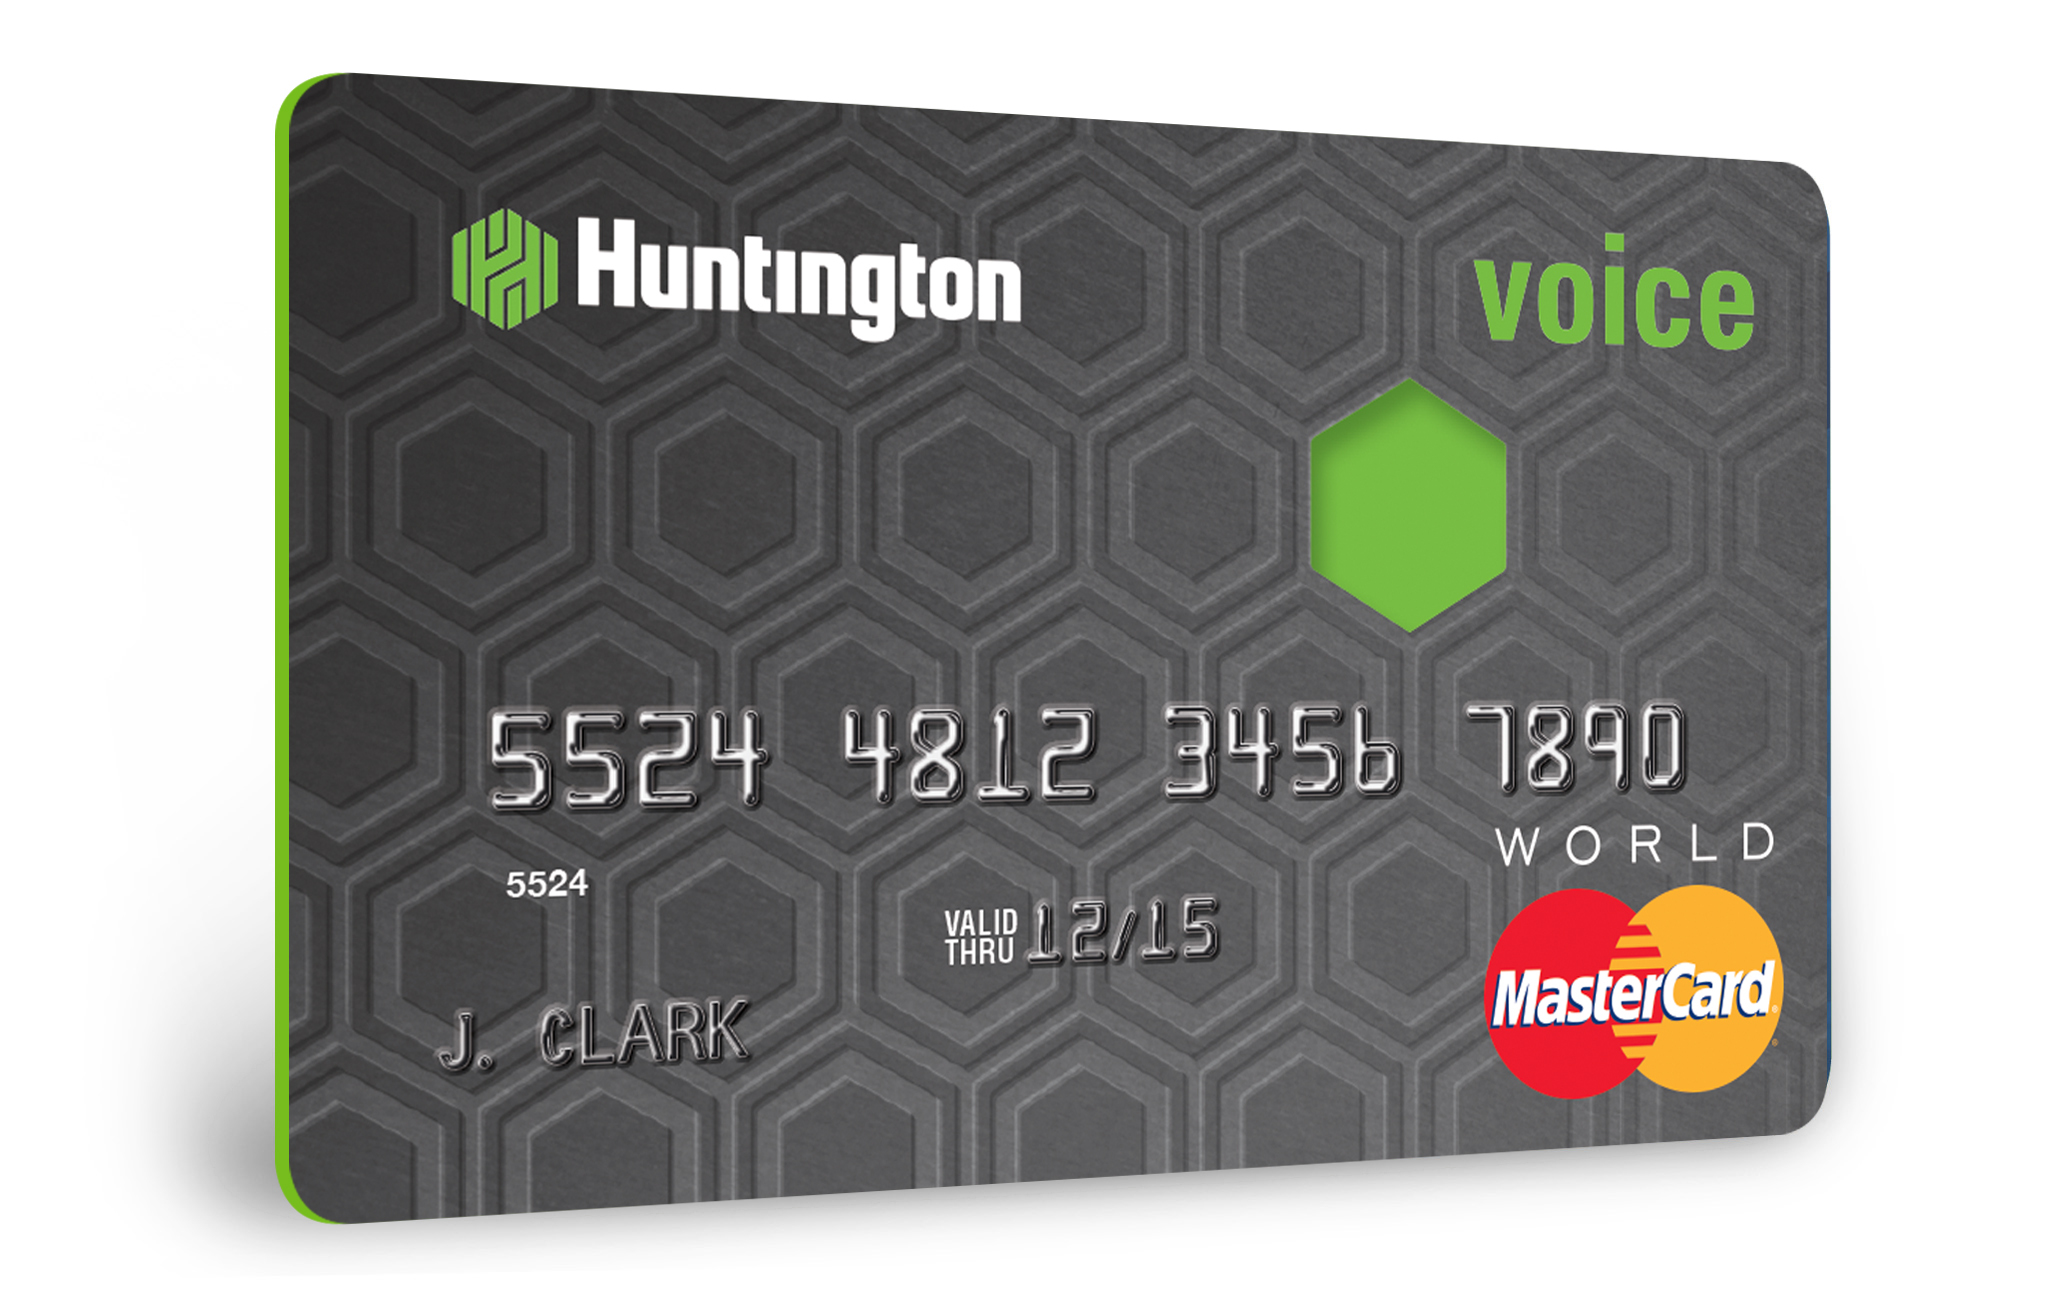 Voice new huntington credit card offers unique customer rewards voice new huntington credit card offers unique customer rewards choices business wire magicingreecefo Images